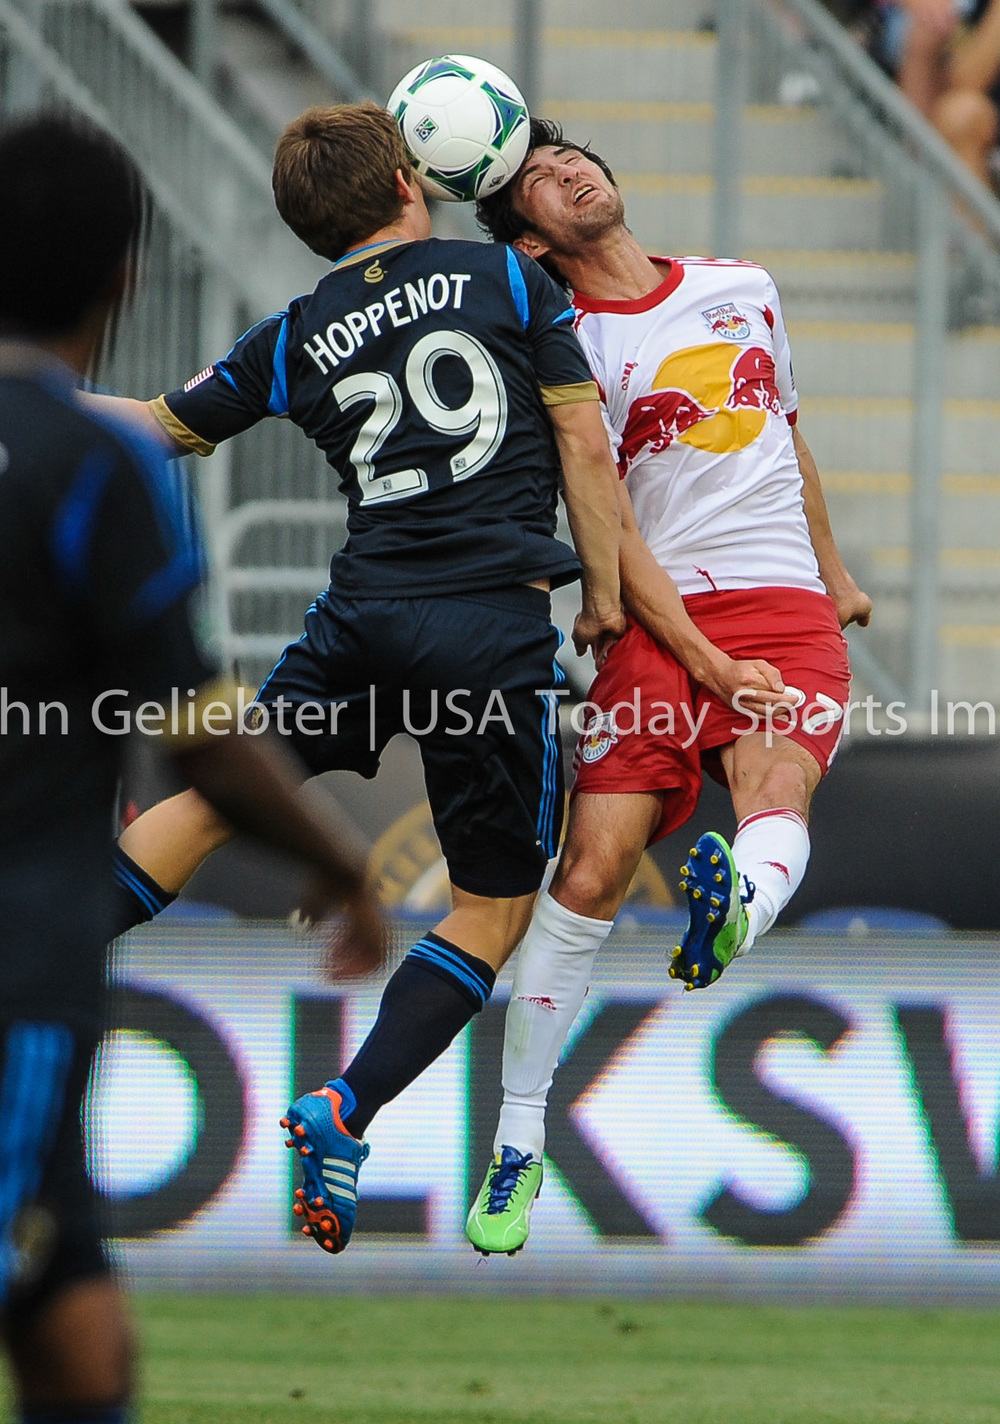 Redbulls_Union_June_23_2013_JAG1016.jpg